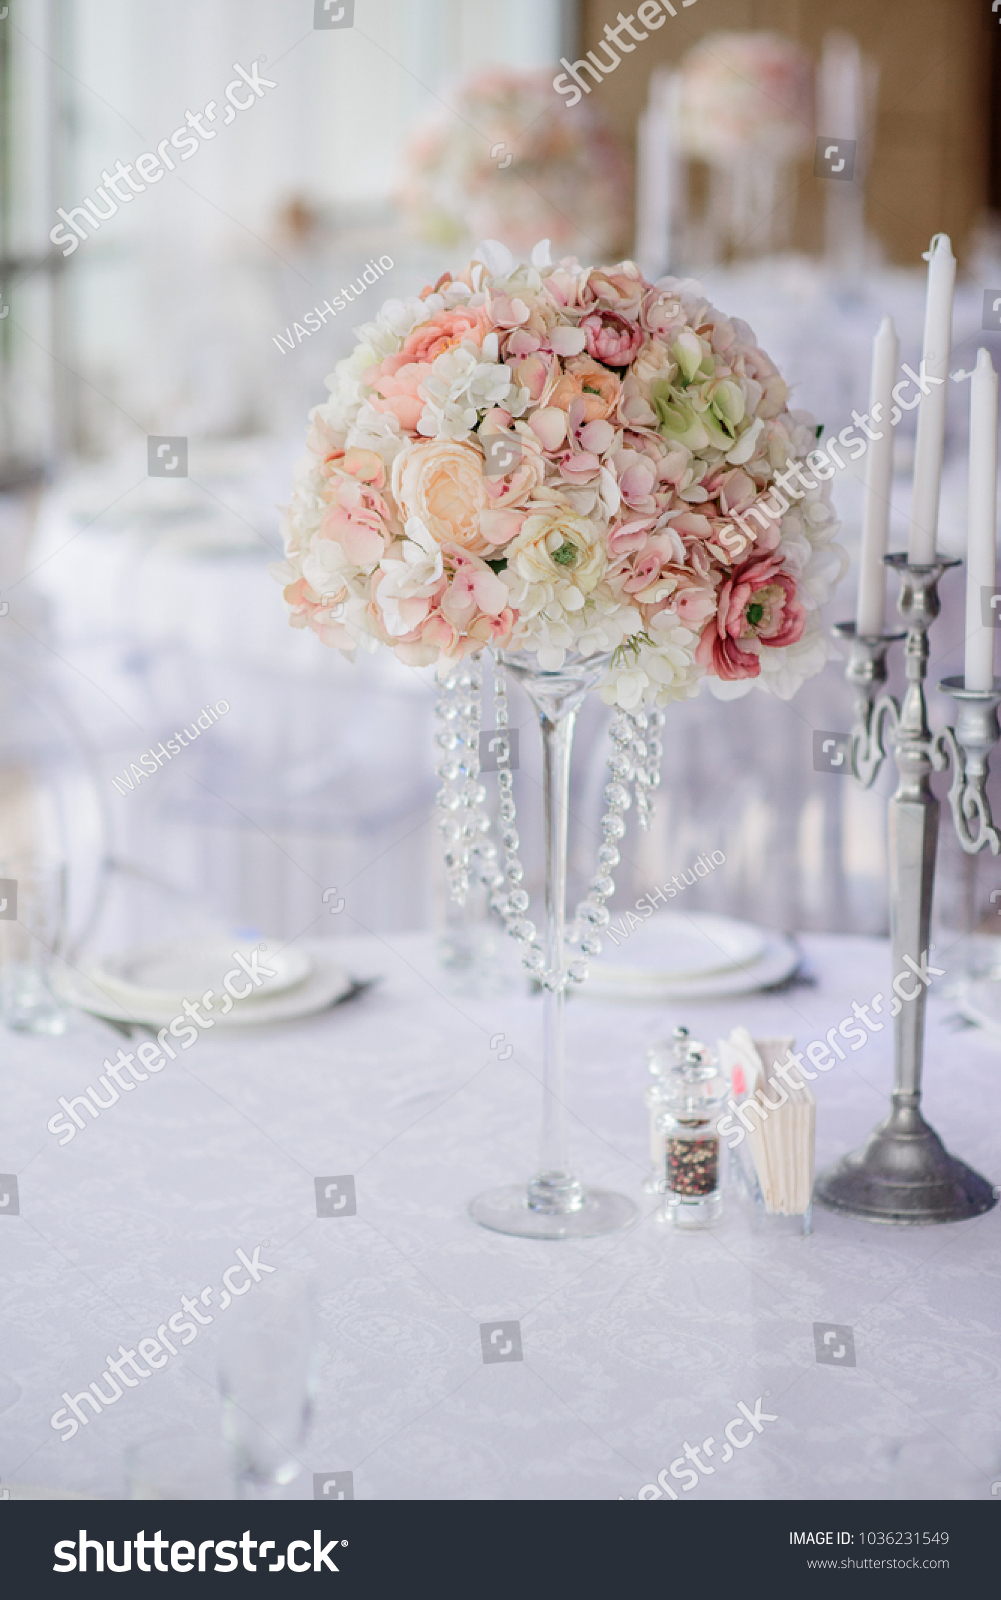 Centerpiece Made Pink White Flowers Stands Stock Photo (Royalty Free ...